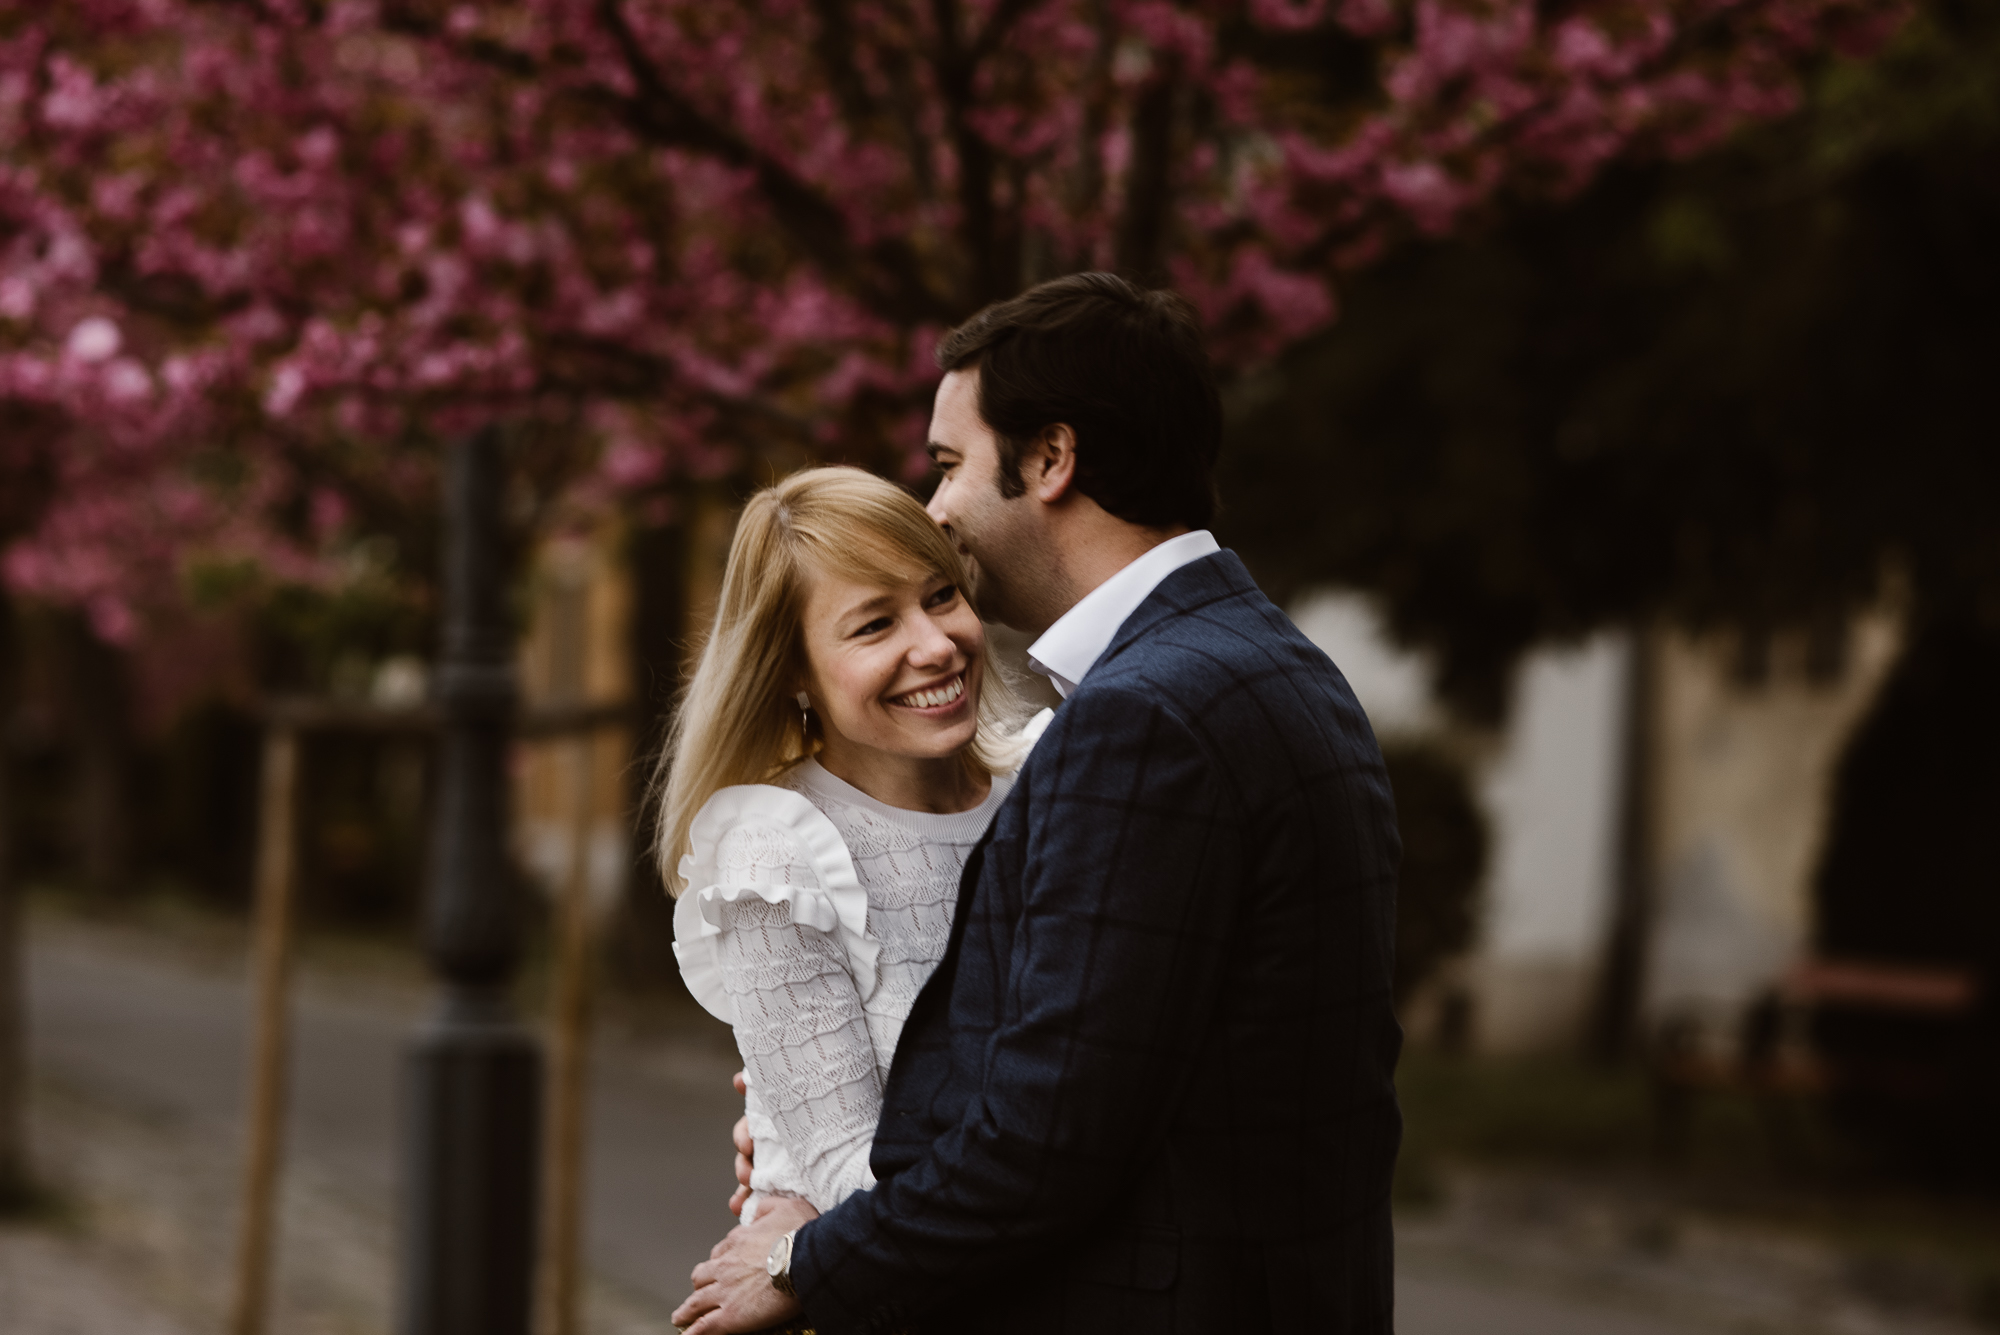 pre-wedding photoshoot Budapest in Lookslikefilm style | The Wedding Fox